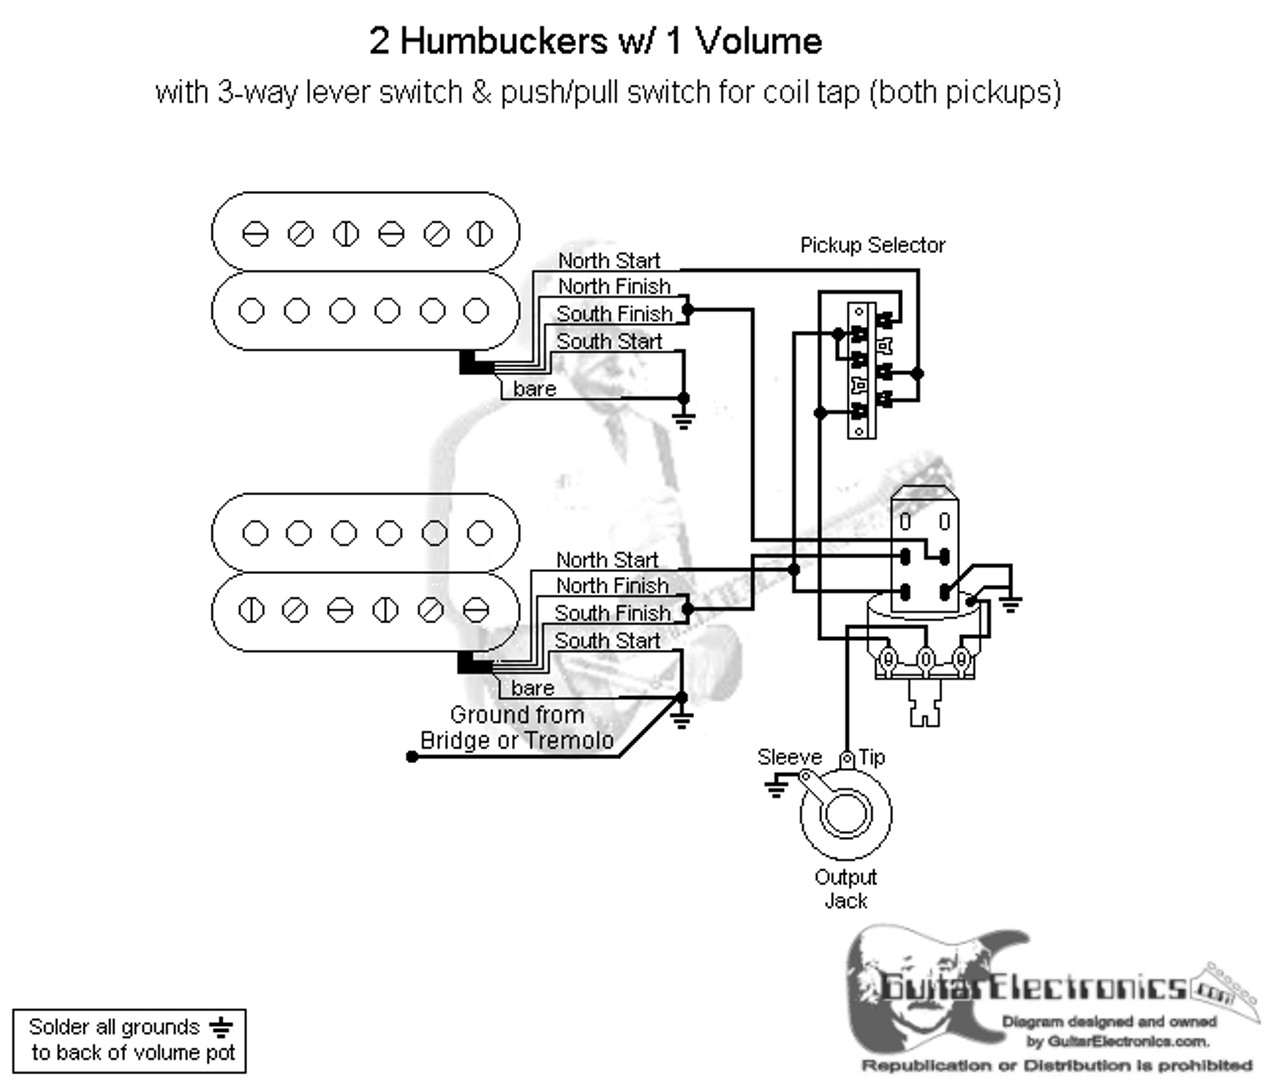 coil tap wiring diagram push pull wiring diagram 2 humbuckers 3 way lever switch 1 volume coil tap coil tap wiring diagram push pull